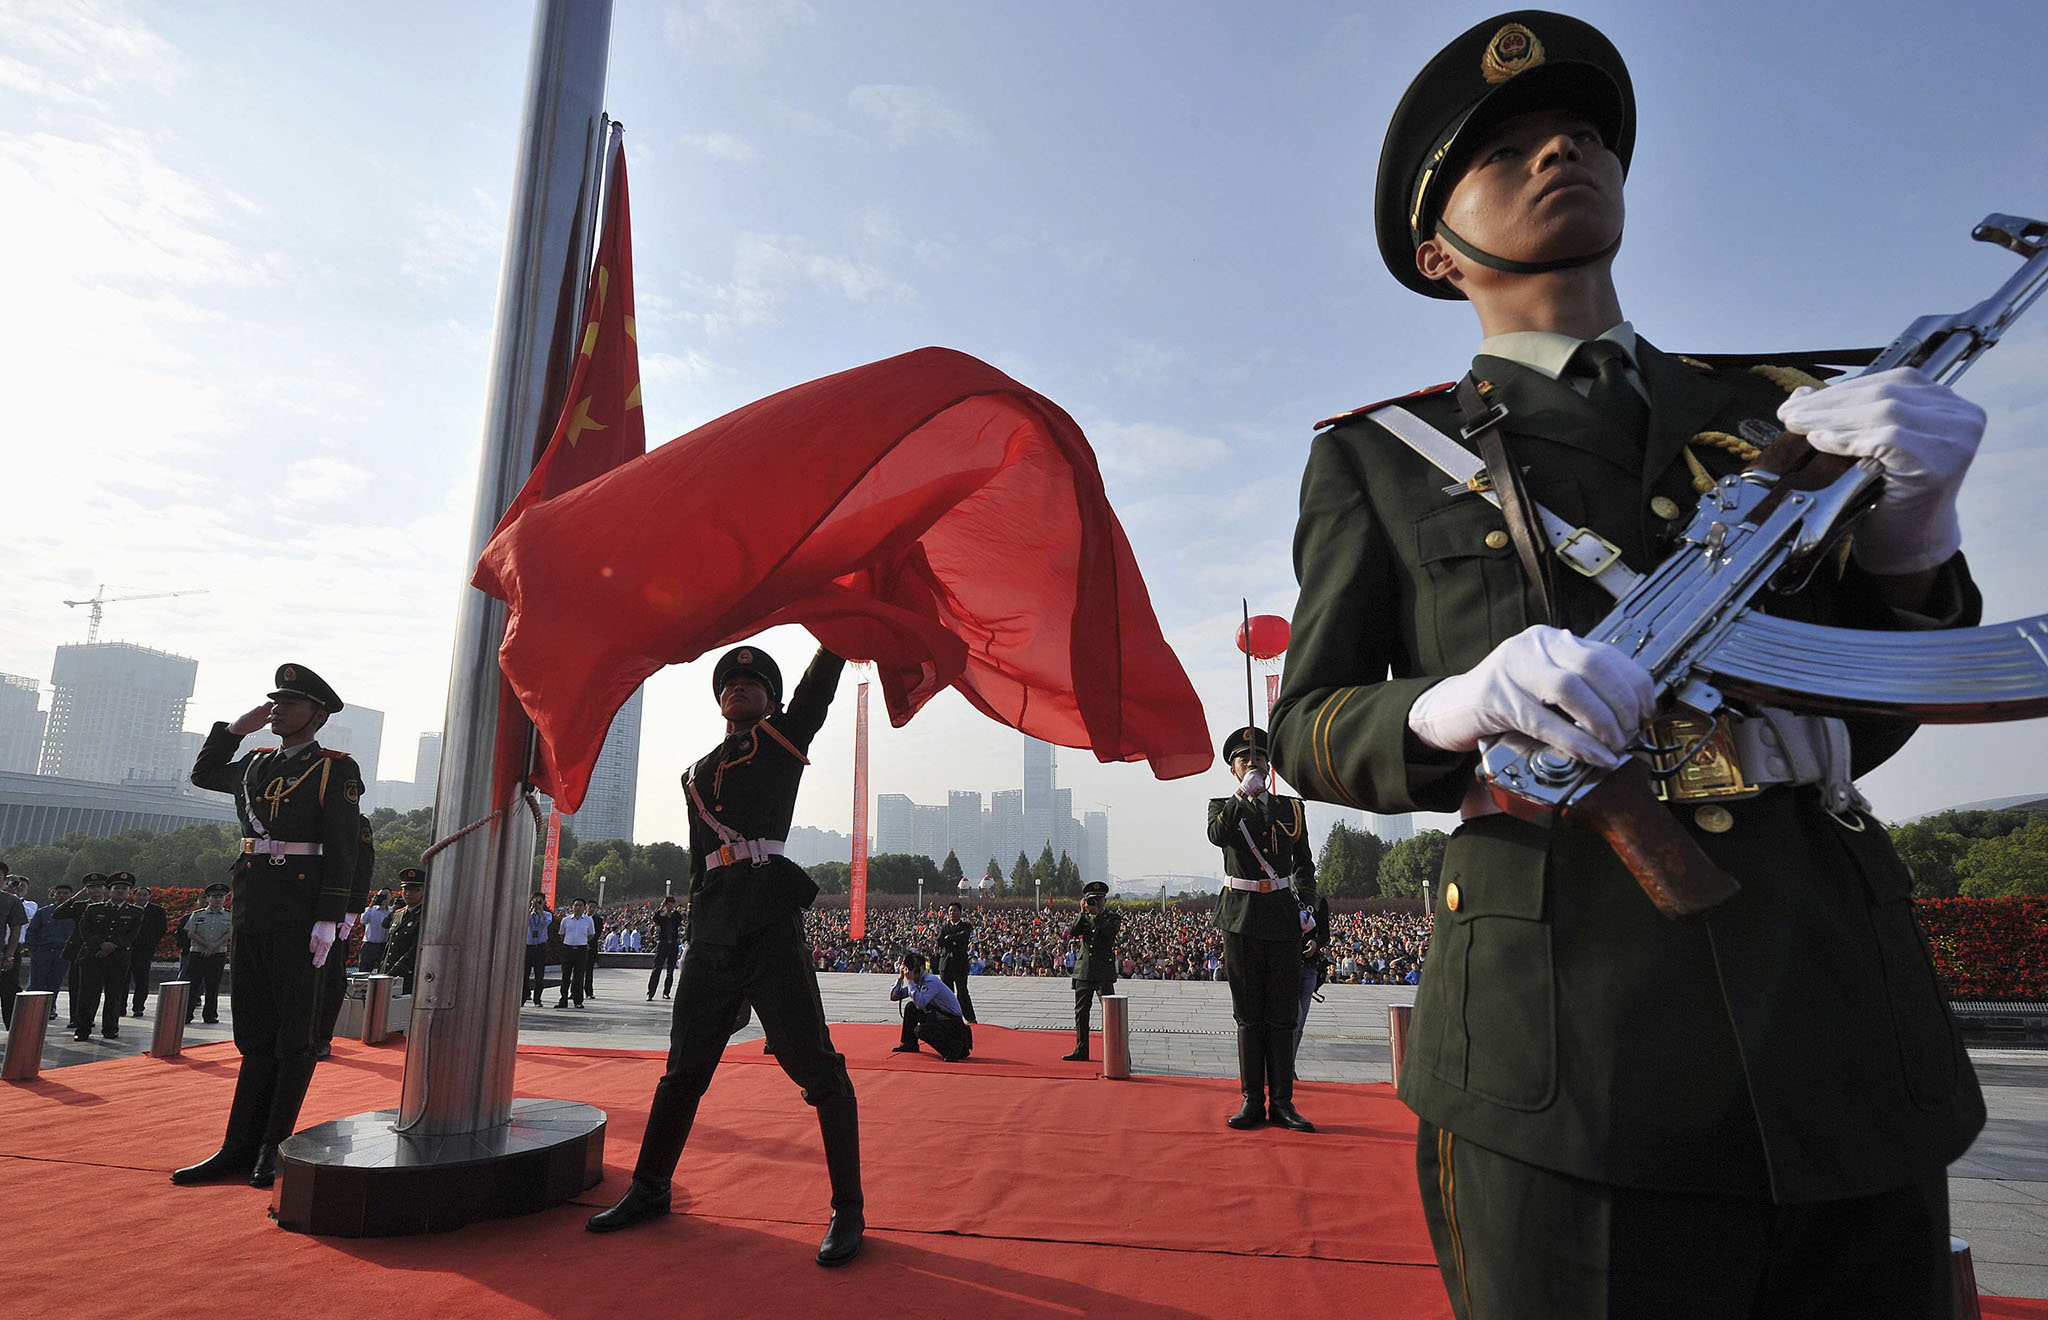 A paramilitary policeman spreads a Chinese national flag during a flag-raising ceremony to mark the 65th anniversary of the founding of the People's Republic of China, in Hefei